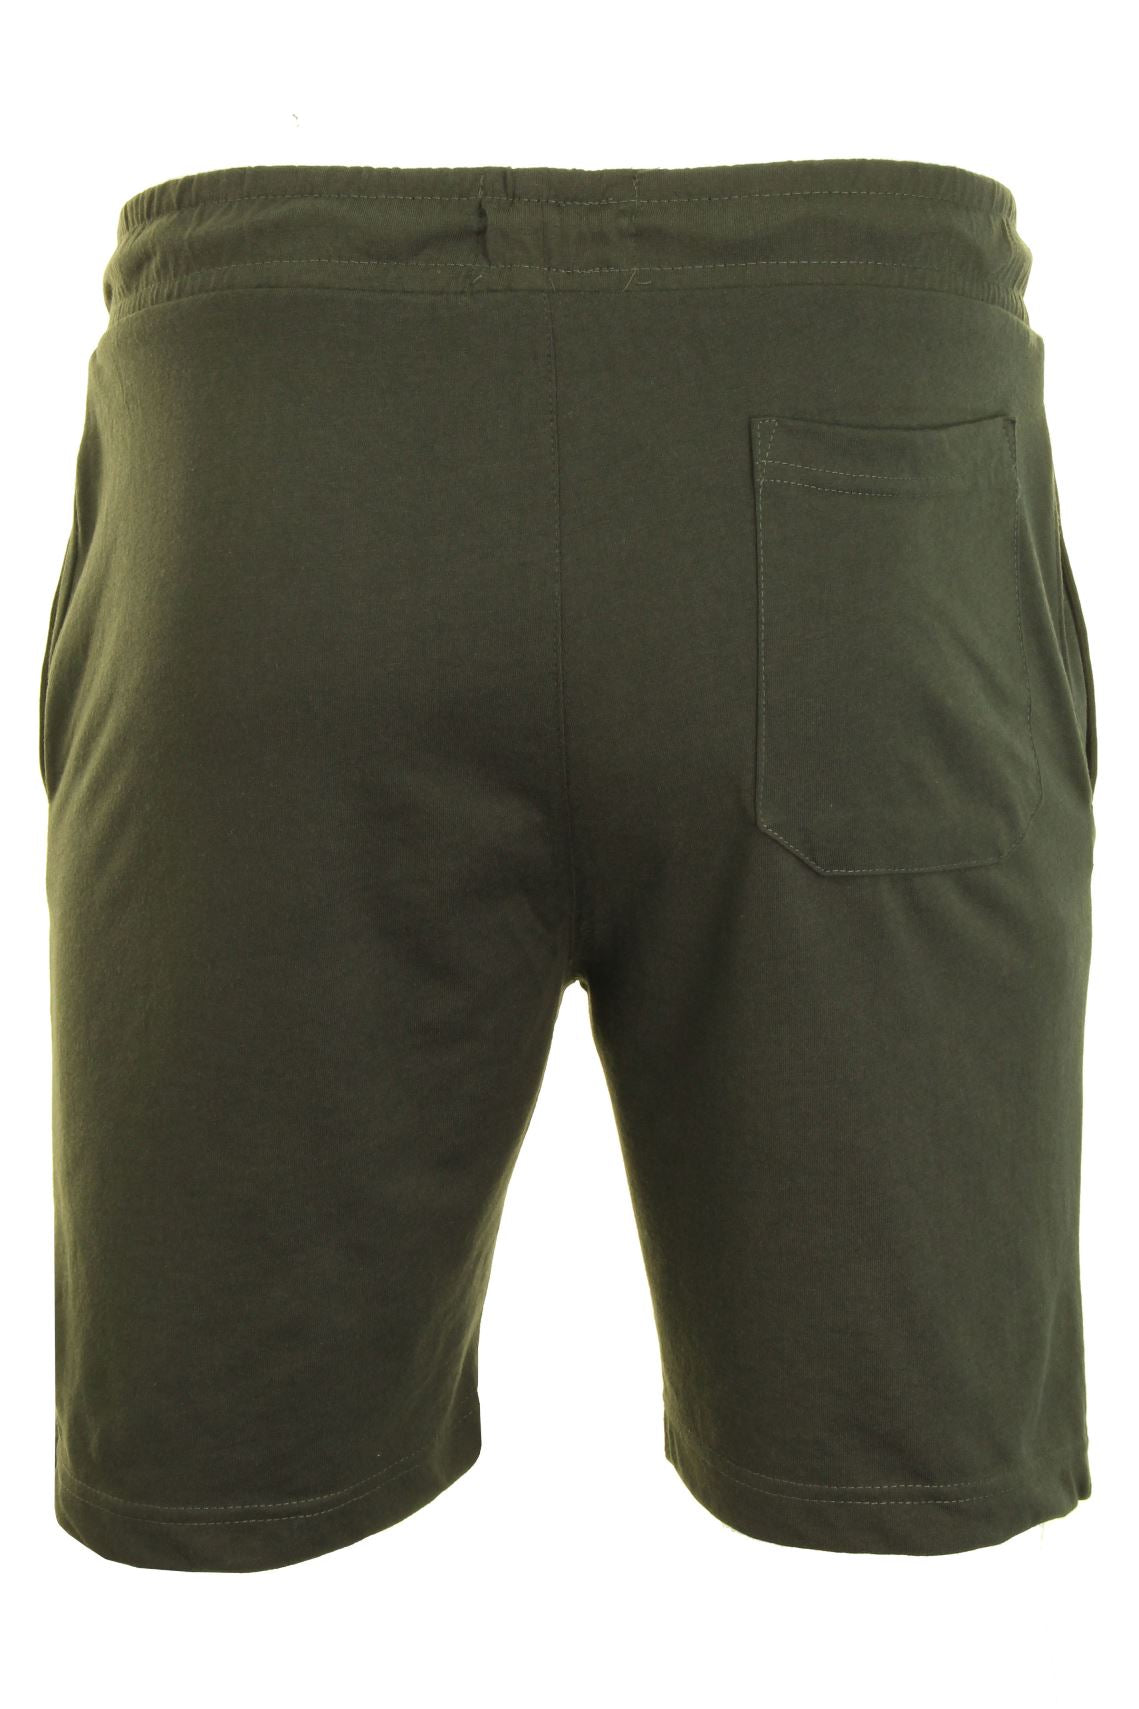 Summer Shorts by Brave Soul 'Barker' Sports Training Jogger Gym Pants-3